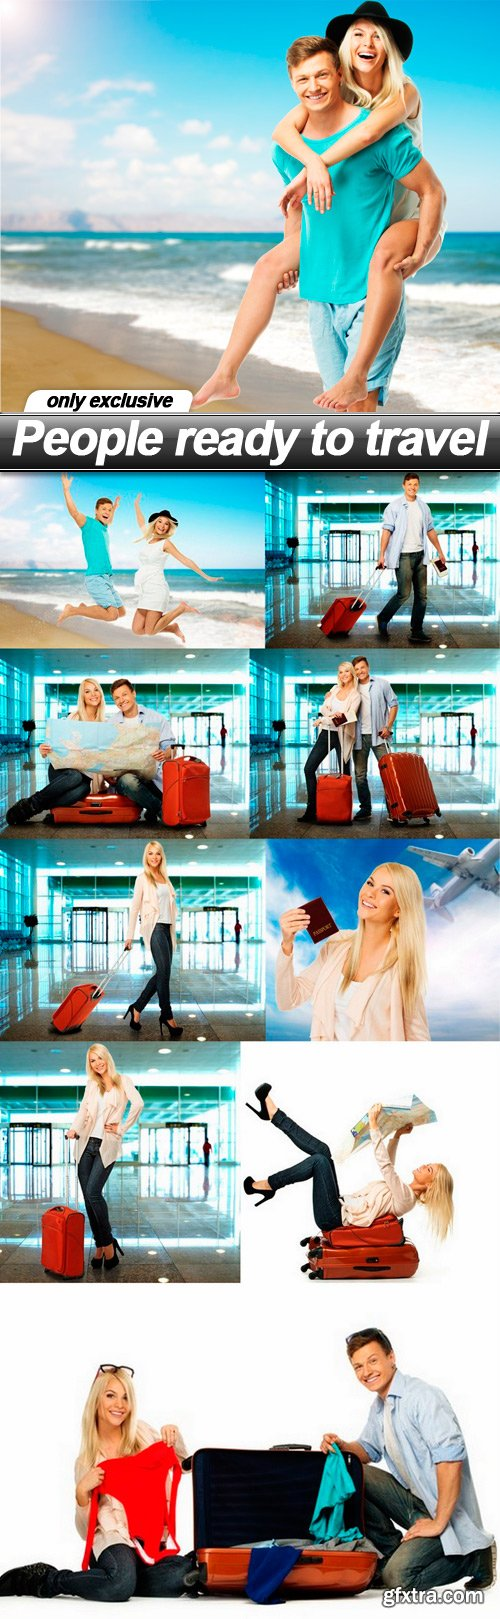 People ready to travel - 10 UHQ JPEG